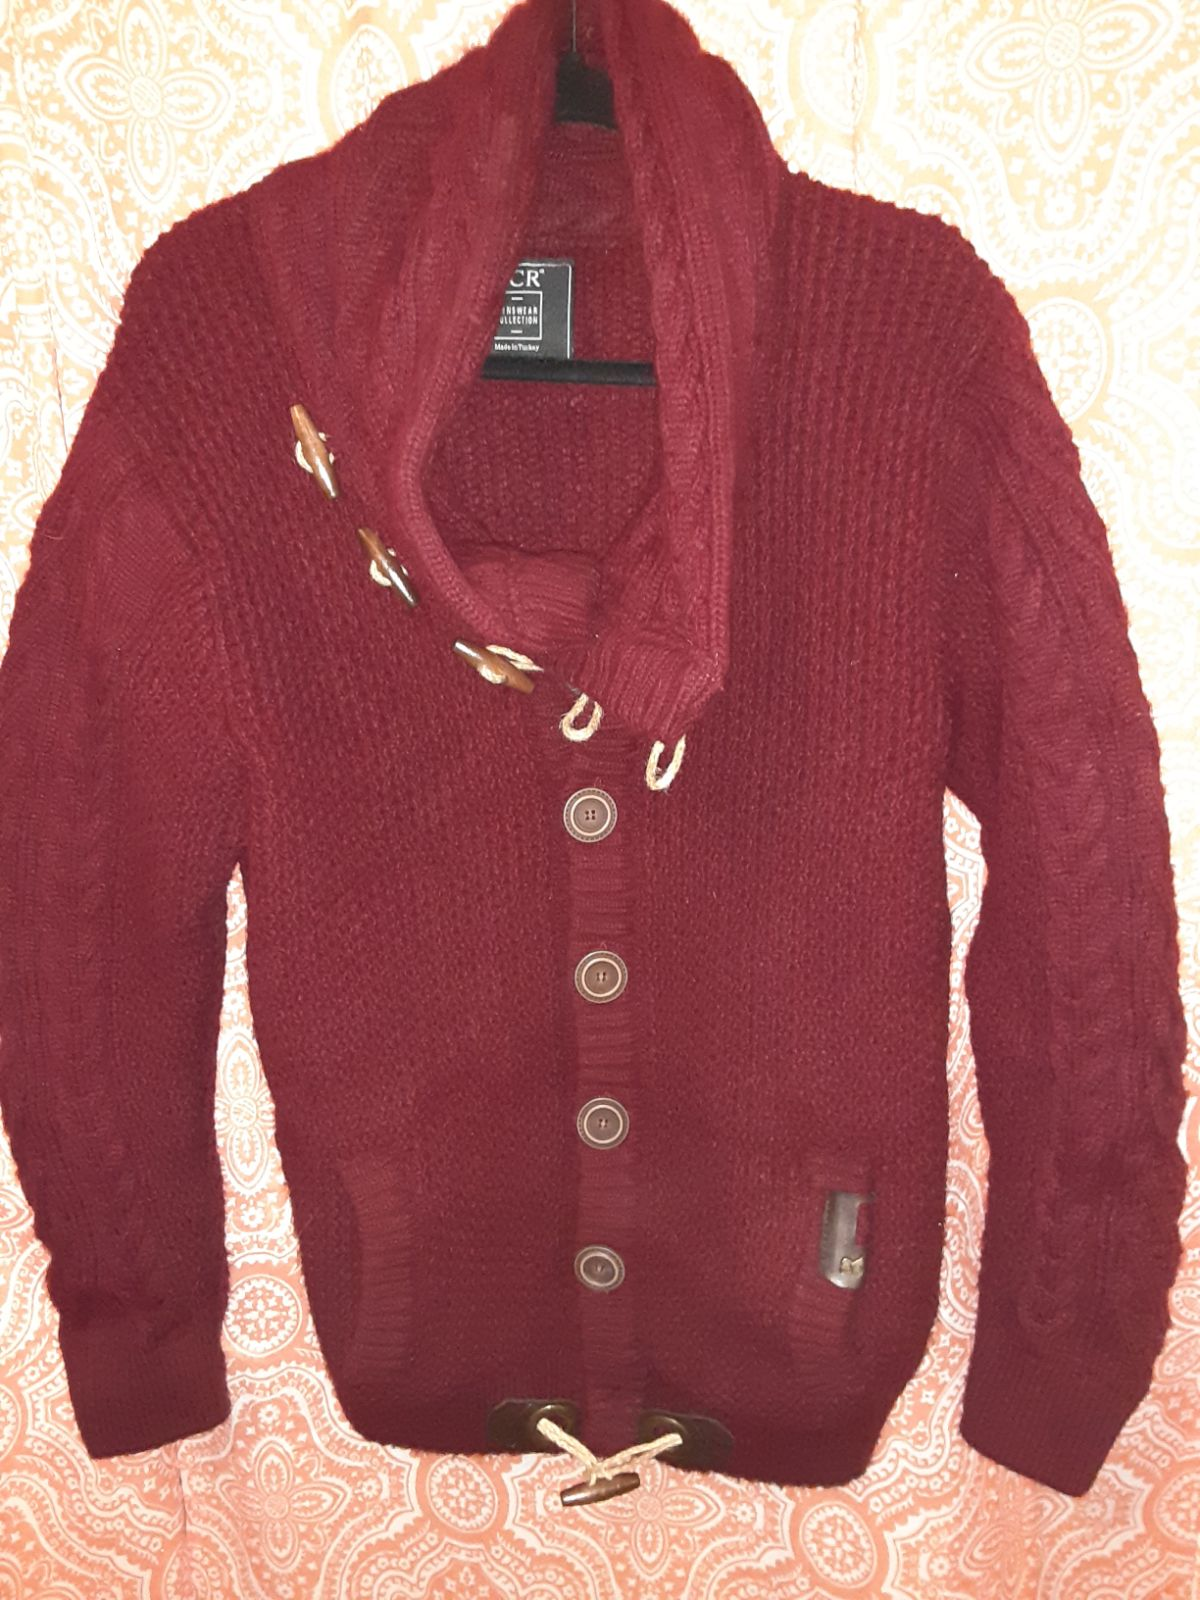 LCR mens sweater jacket